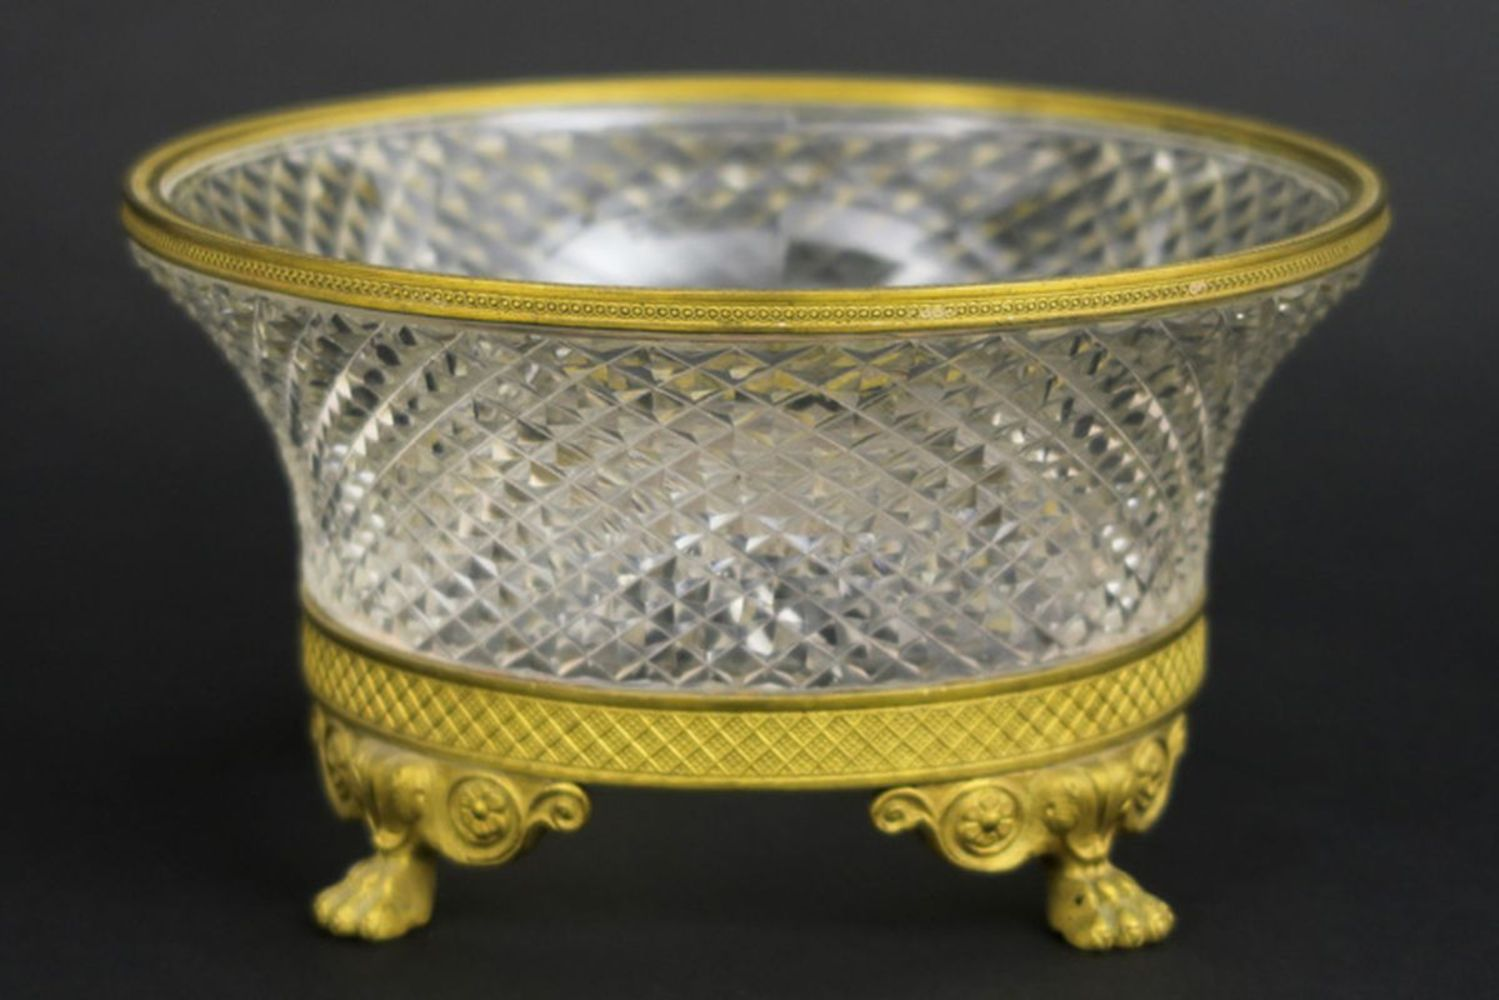 Classical and Asian Arts and Antiquities (Antwerp)